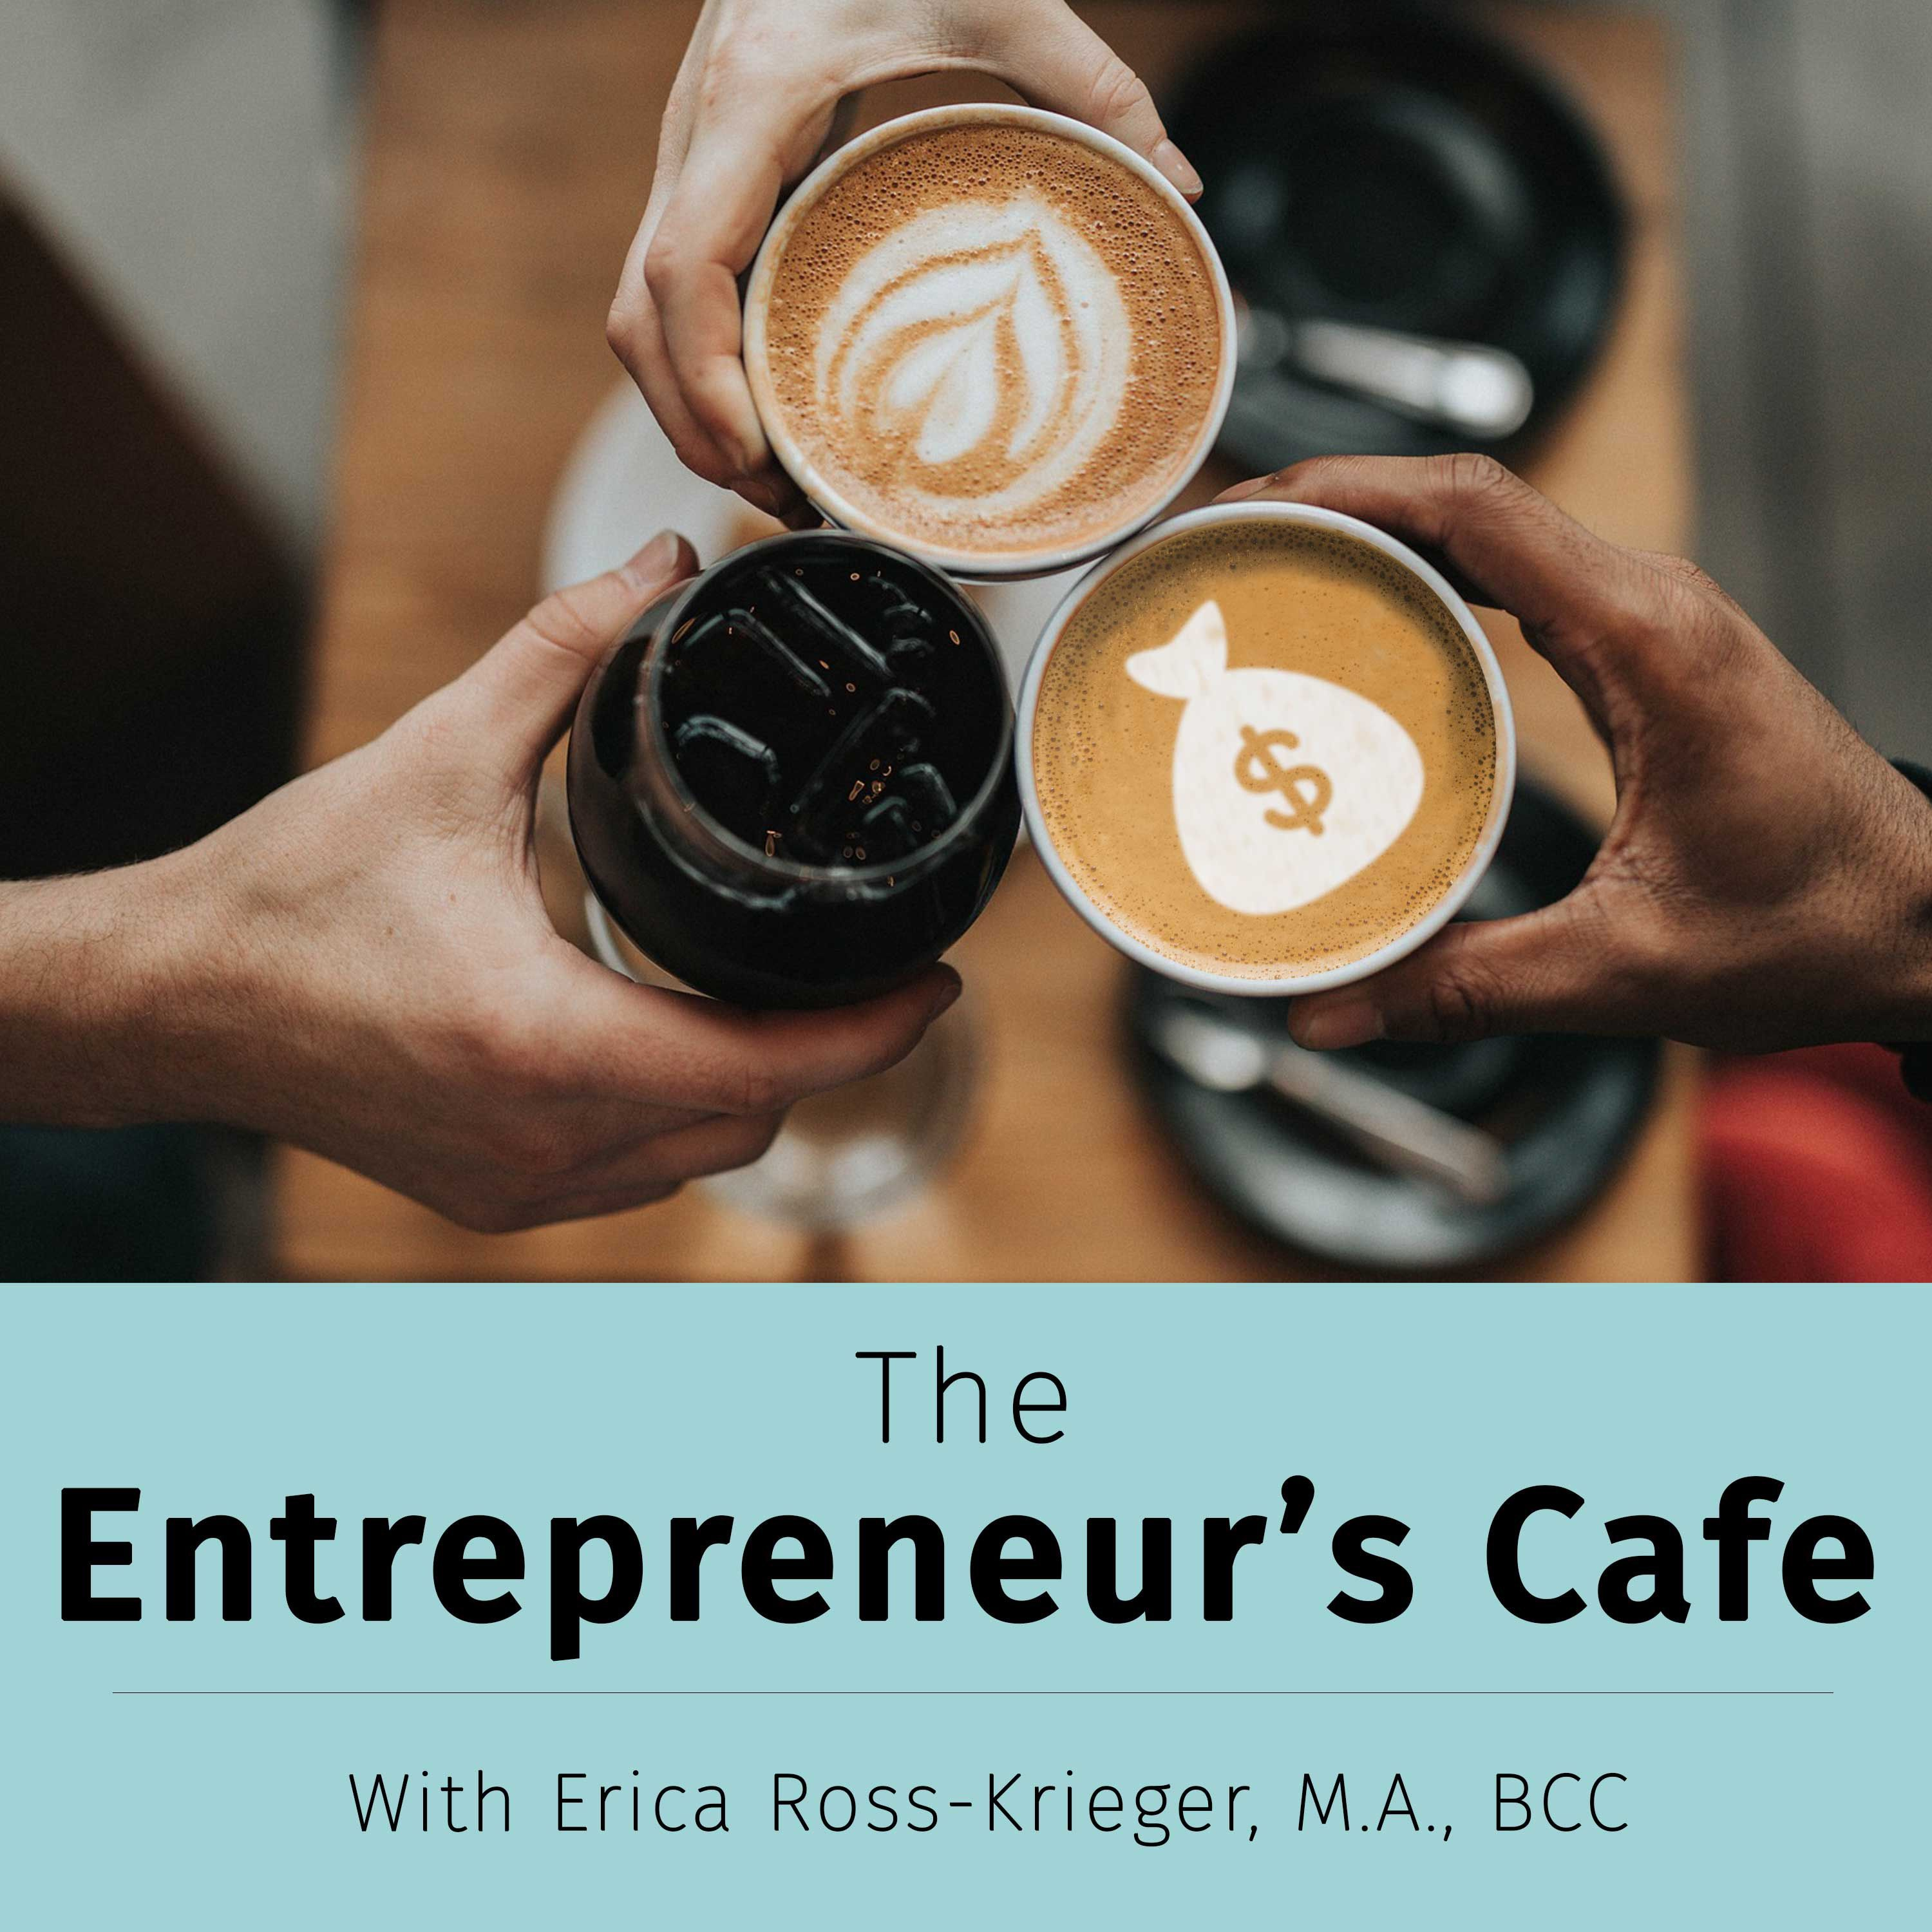 The Entrepreneur's Café: Creating True Wealth from the Inside Out